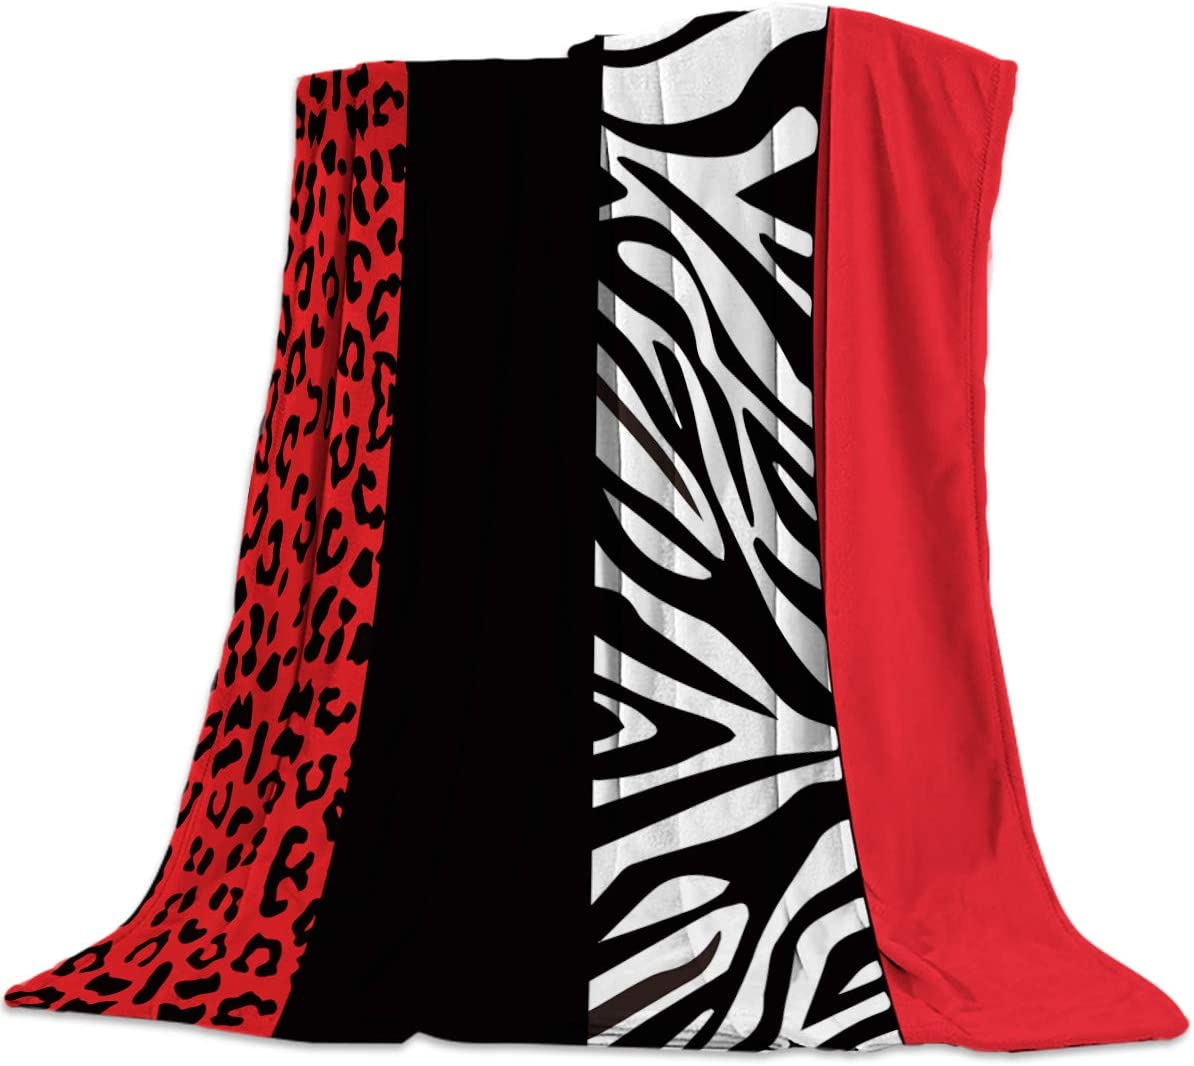 Throw Blankets Red Leopard and Zebra Animal Print Soft Breathable Warm Cozy Flannel Fleece Bed Blanket Bedspread for Home Sofa Couch Chair Living Bedroom All Seasons Use, 40x50